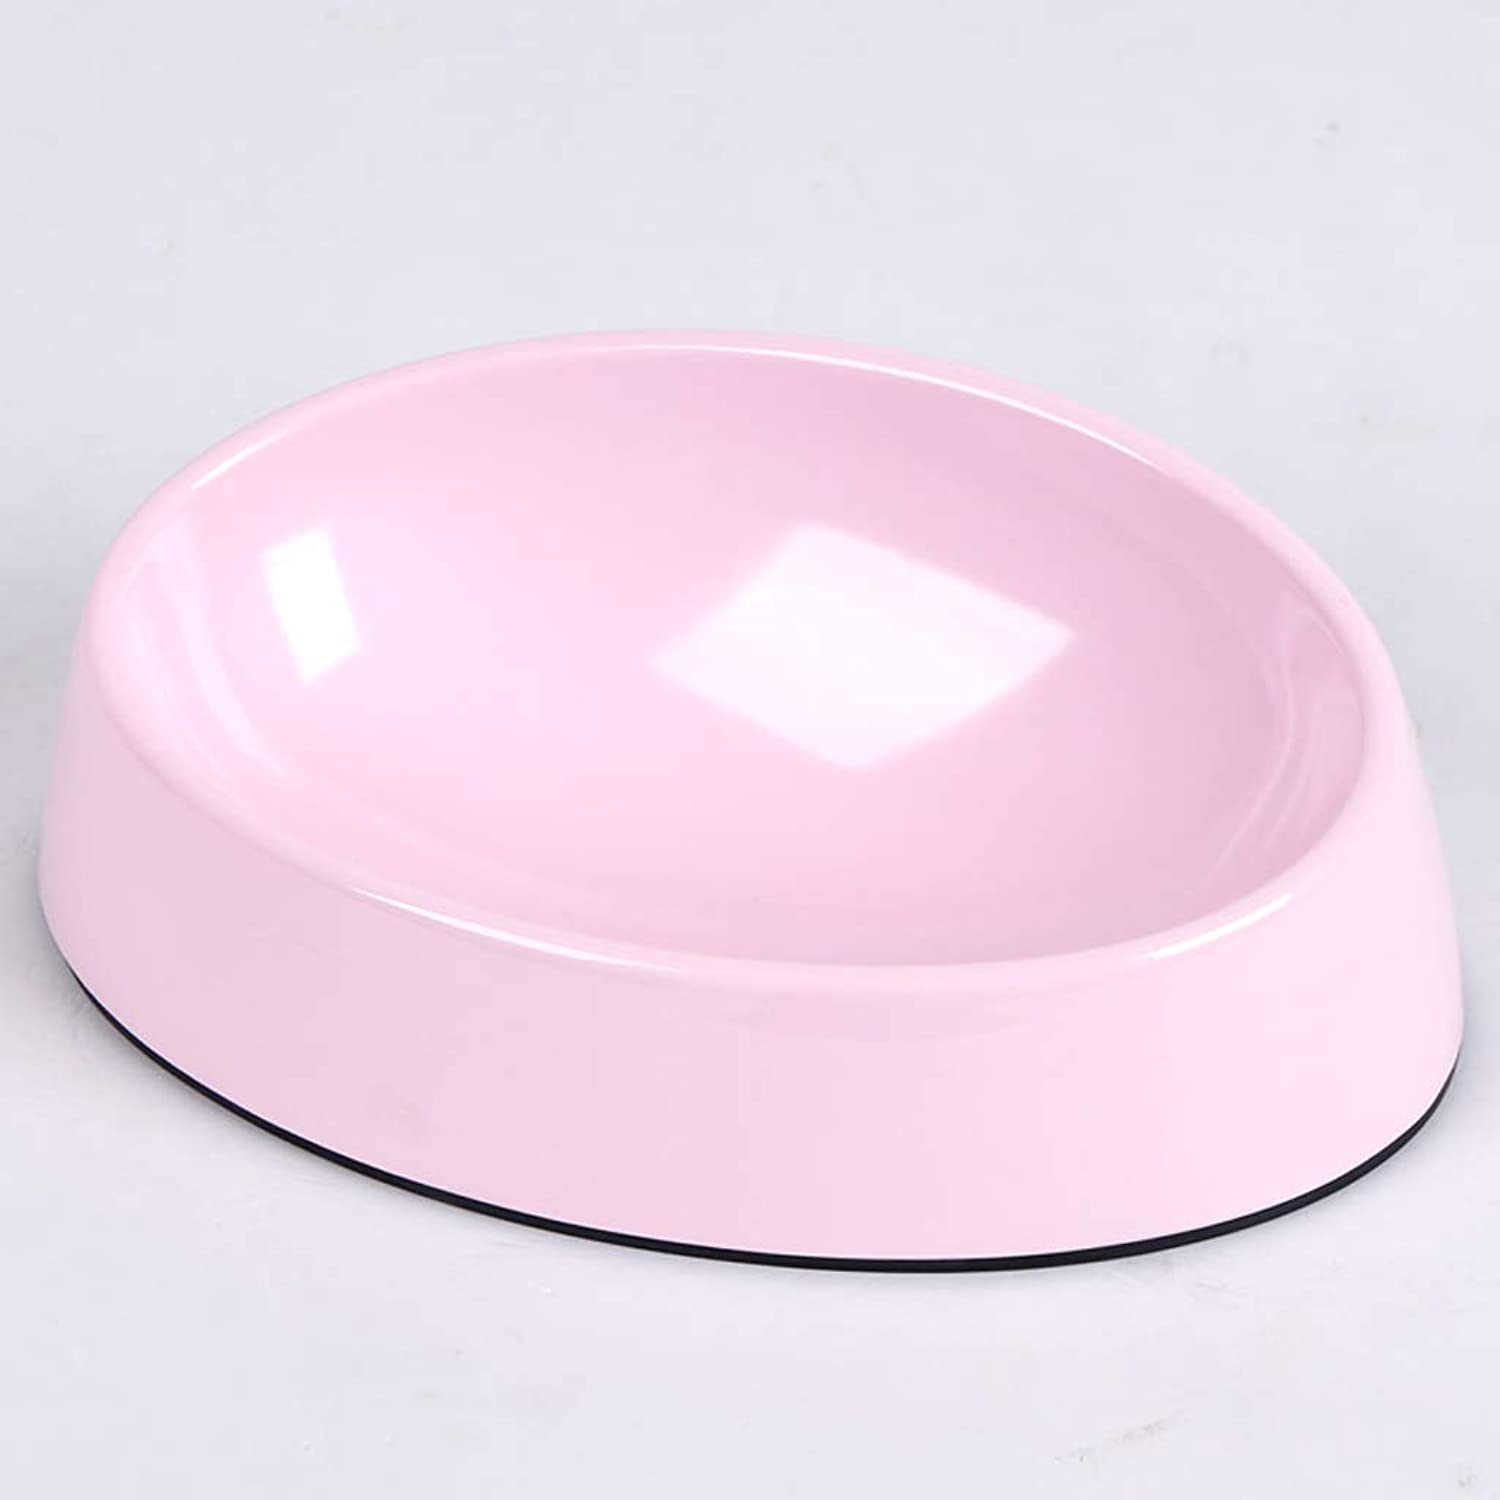 MXD Dog Bowl Flat Flat Face Pet Dog Food Bowl Food Bowl Dog Bowl Cat Bowl Wide Mouth Bowl (Size   S)